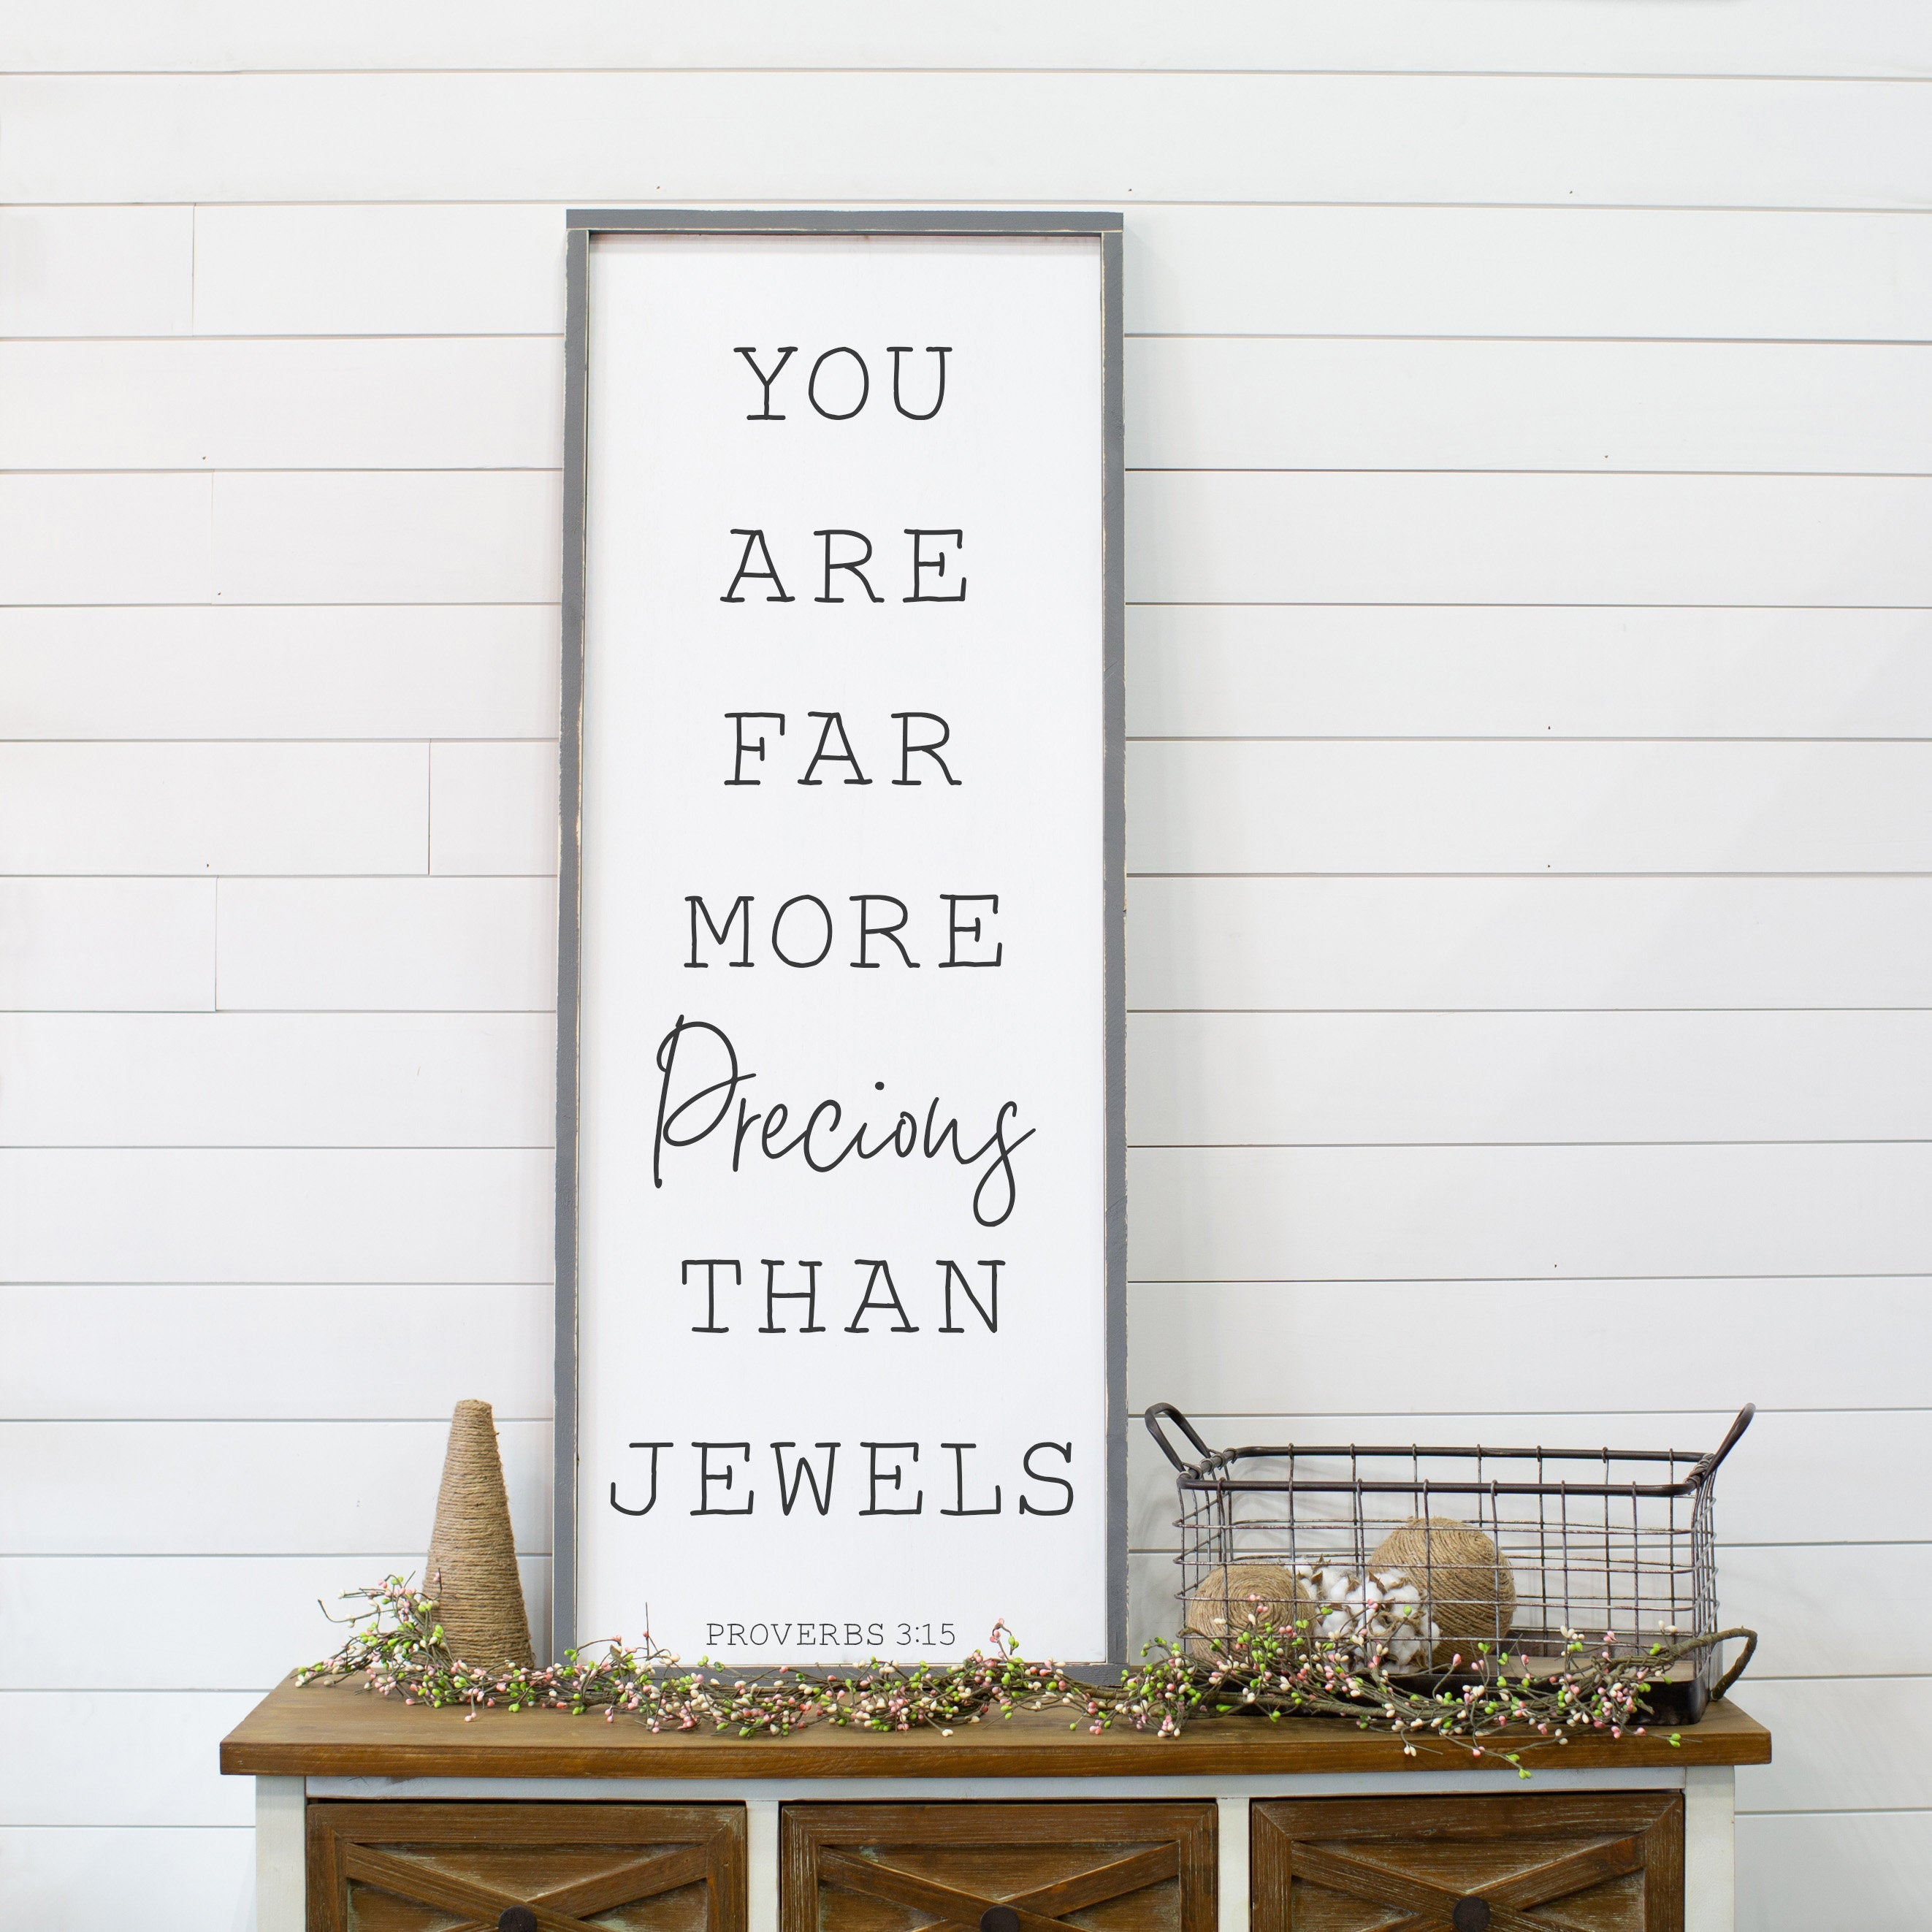 You Are Far More Precious Than Jewels Baby Shower Gift Large Baby Room Wood Sign Modern Farmhouse Decor Gift for Her Kids Bedroom Sign